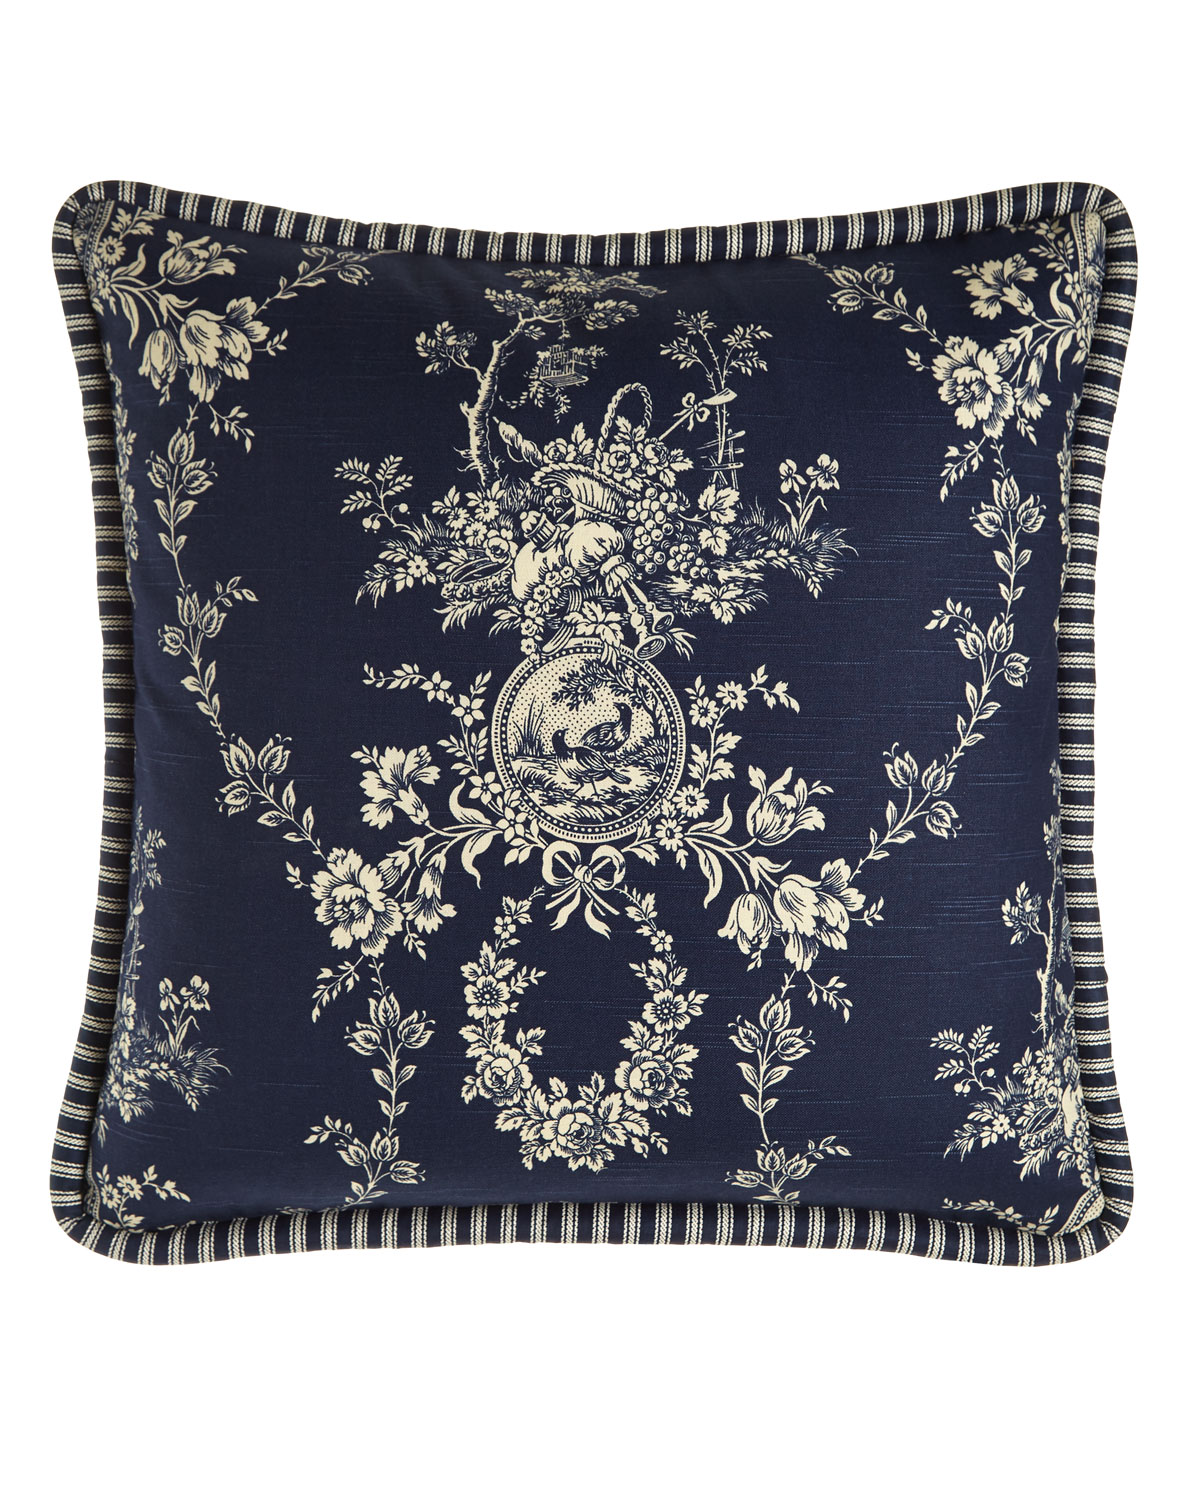 Sherry Kline Home European Country Toile Sham